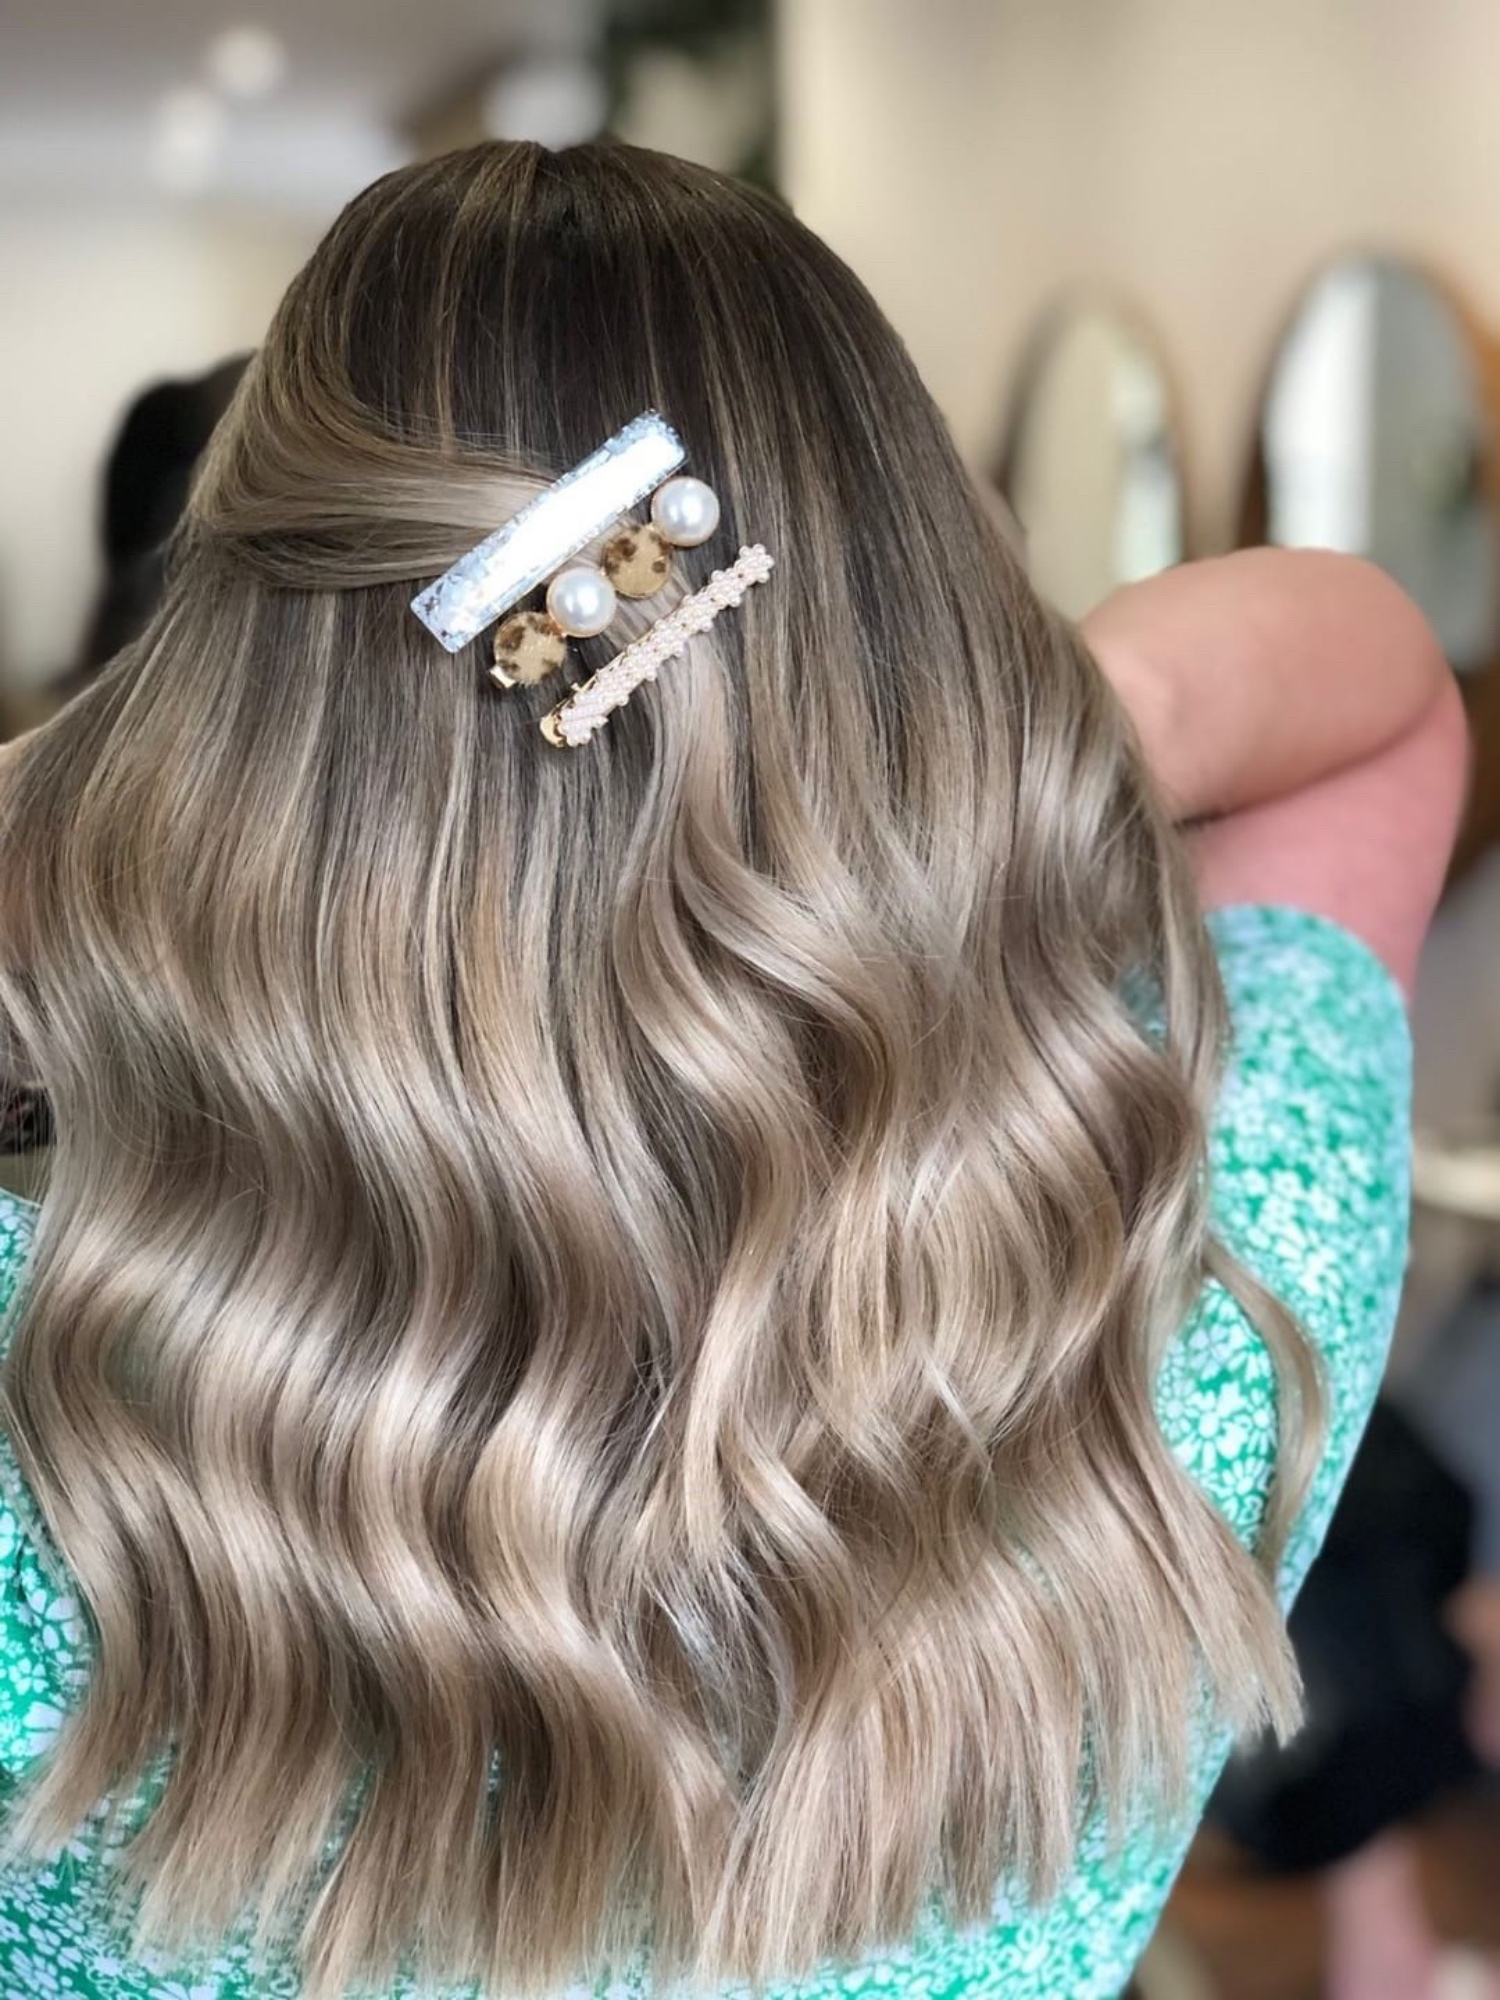 Best Haircare Products for Blonde Hair